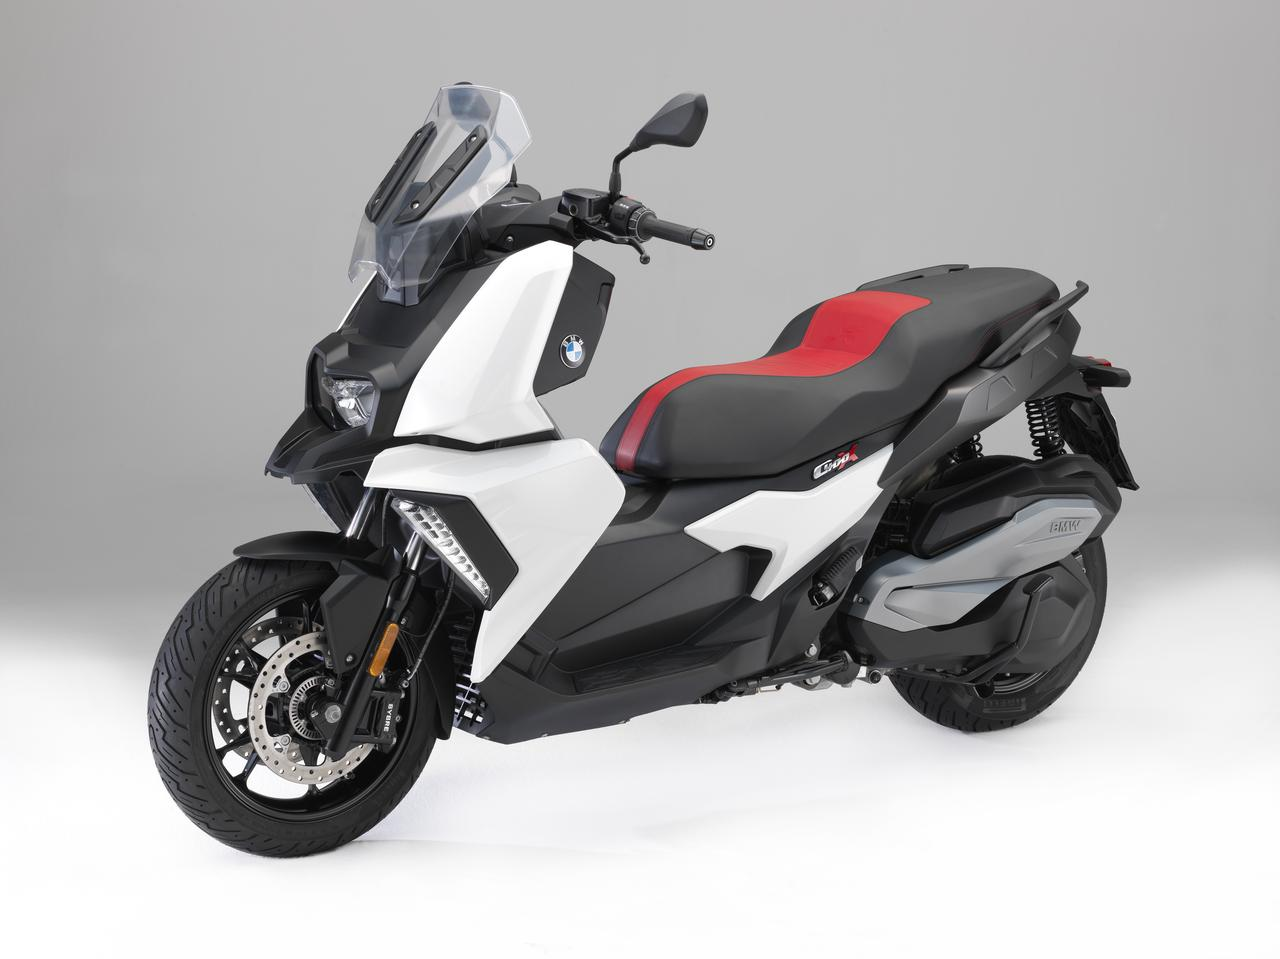 Images : 6番目の画像 - BMW C 400 X - LAWRENCE - Motorcycle x Cars + α = Your Life.